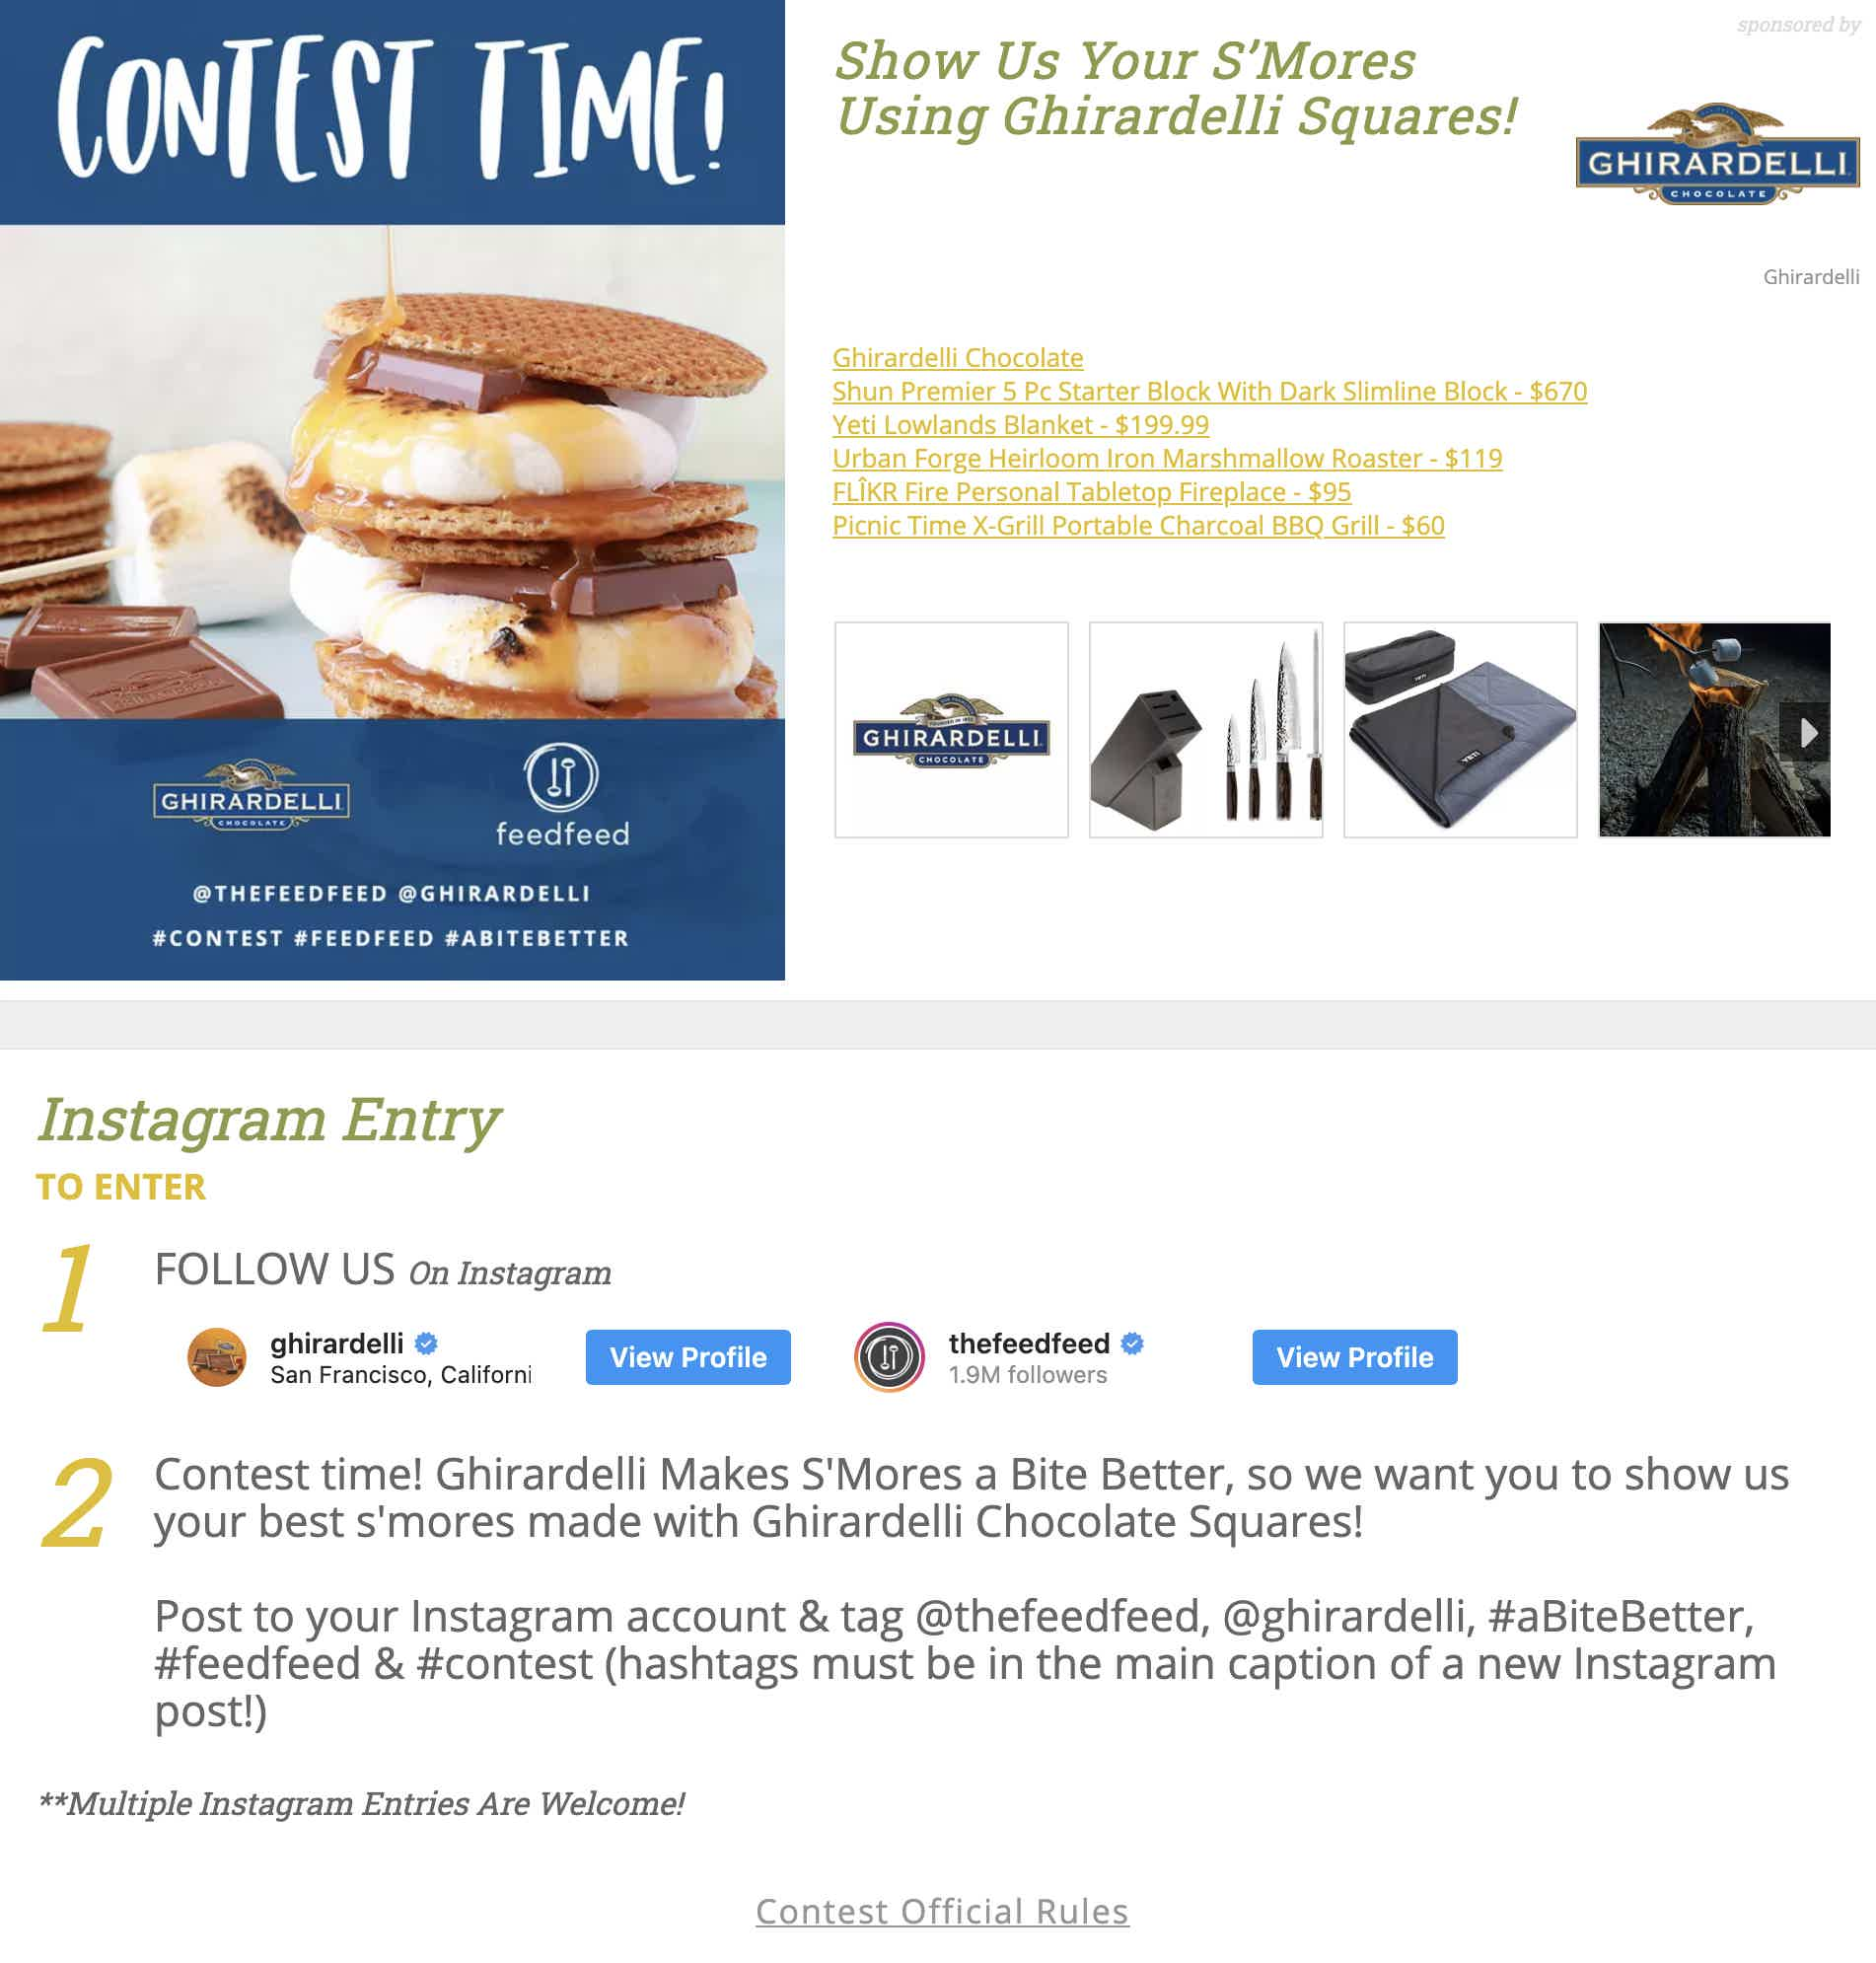 The Feed Feed Ghirardelli Contest